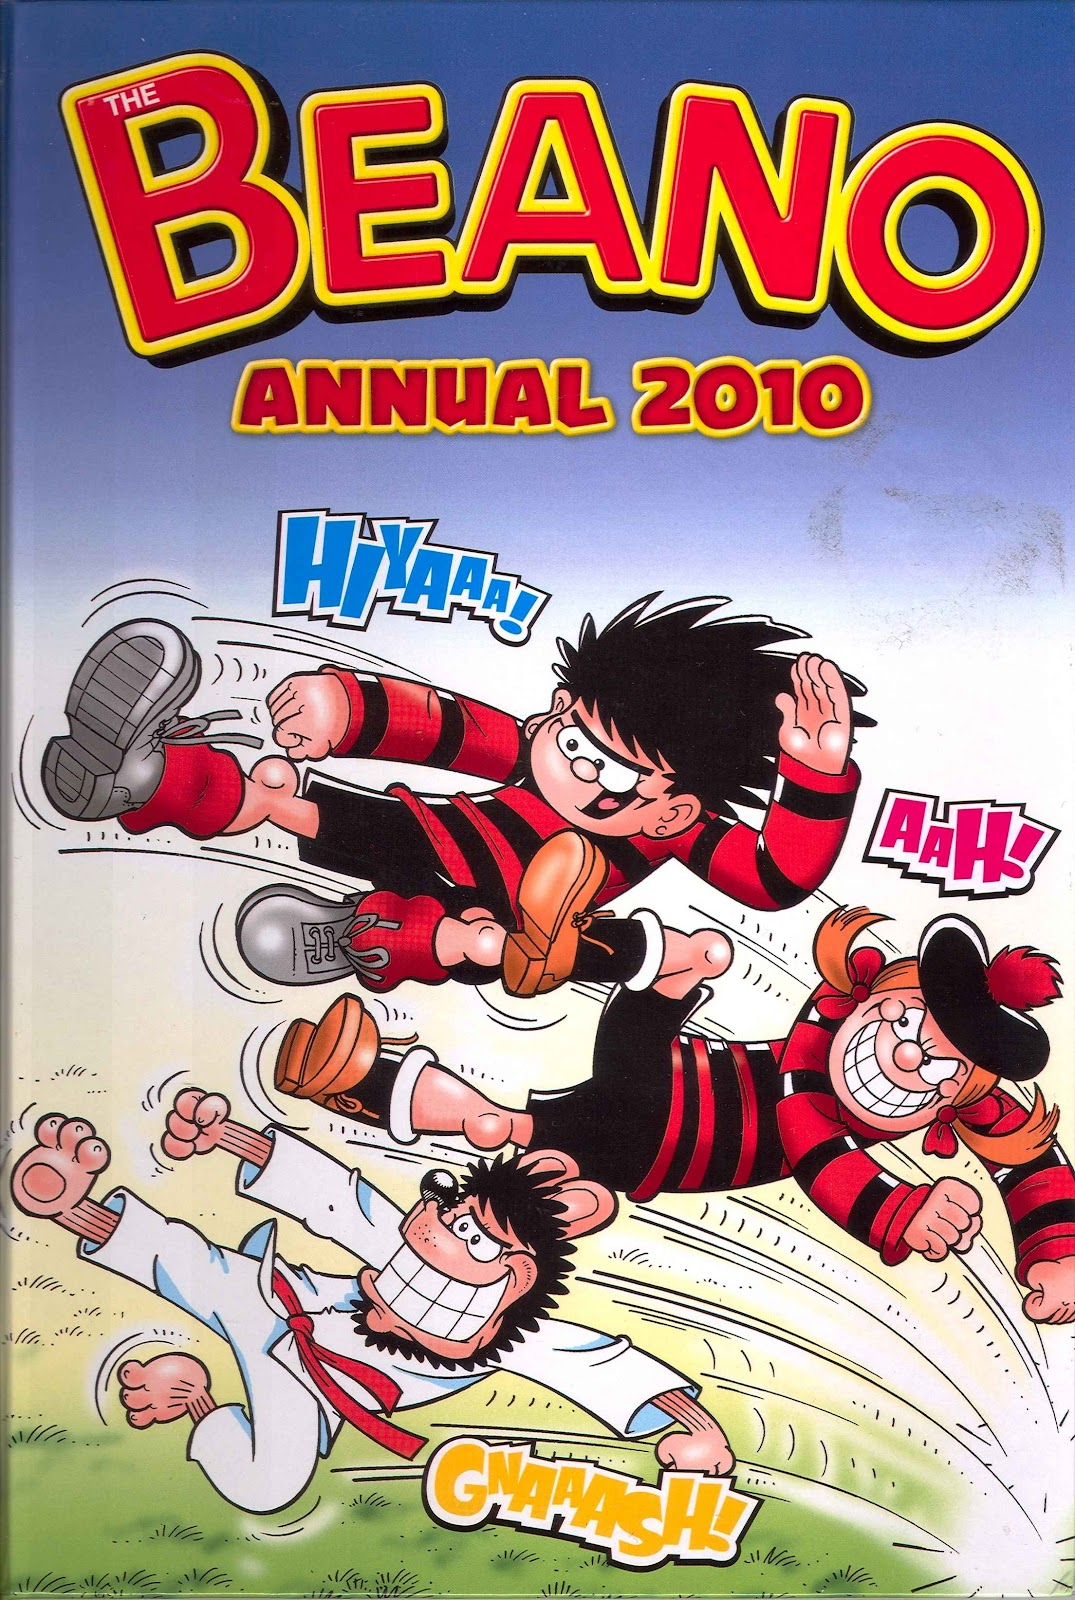 The Beano Book (Annual) 2010 Page 1